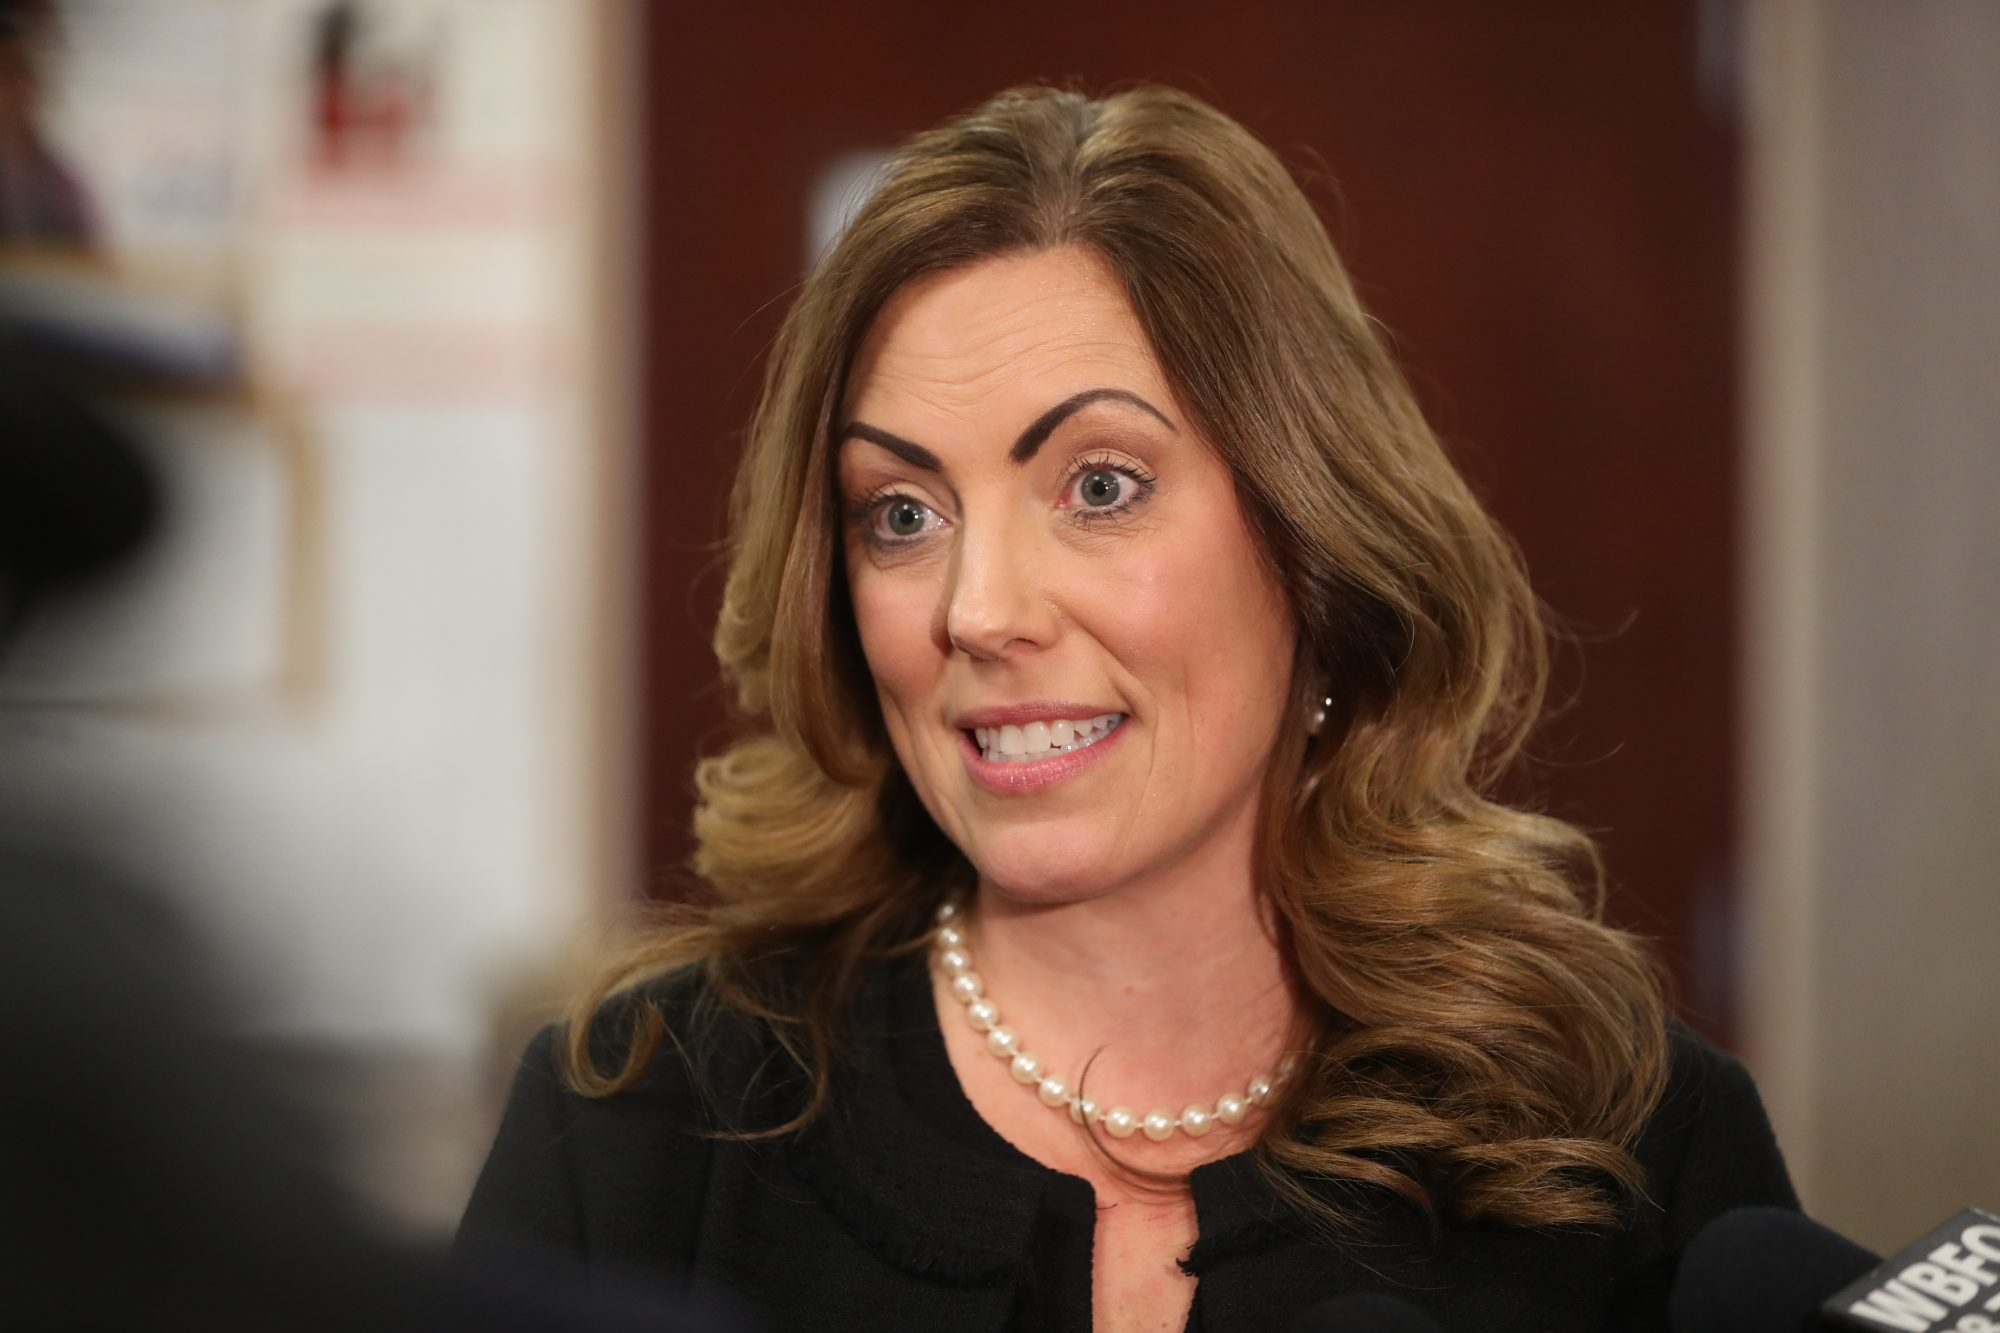 Niagara DA appears in John, Lorena Bobbitt documentary